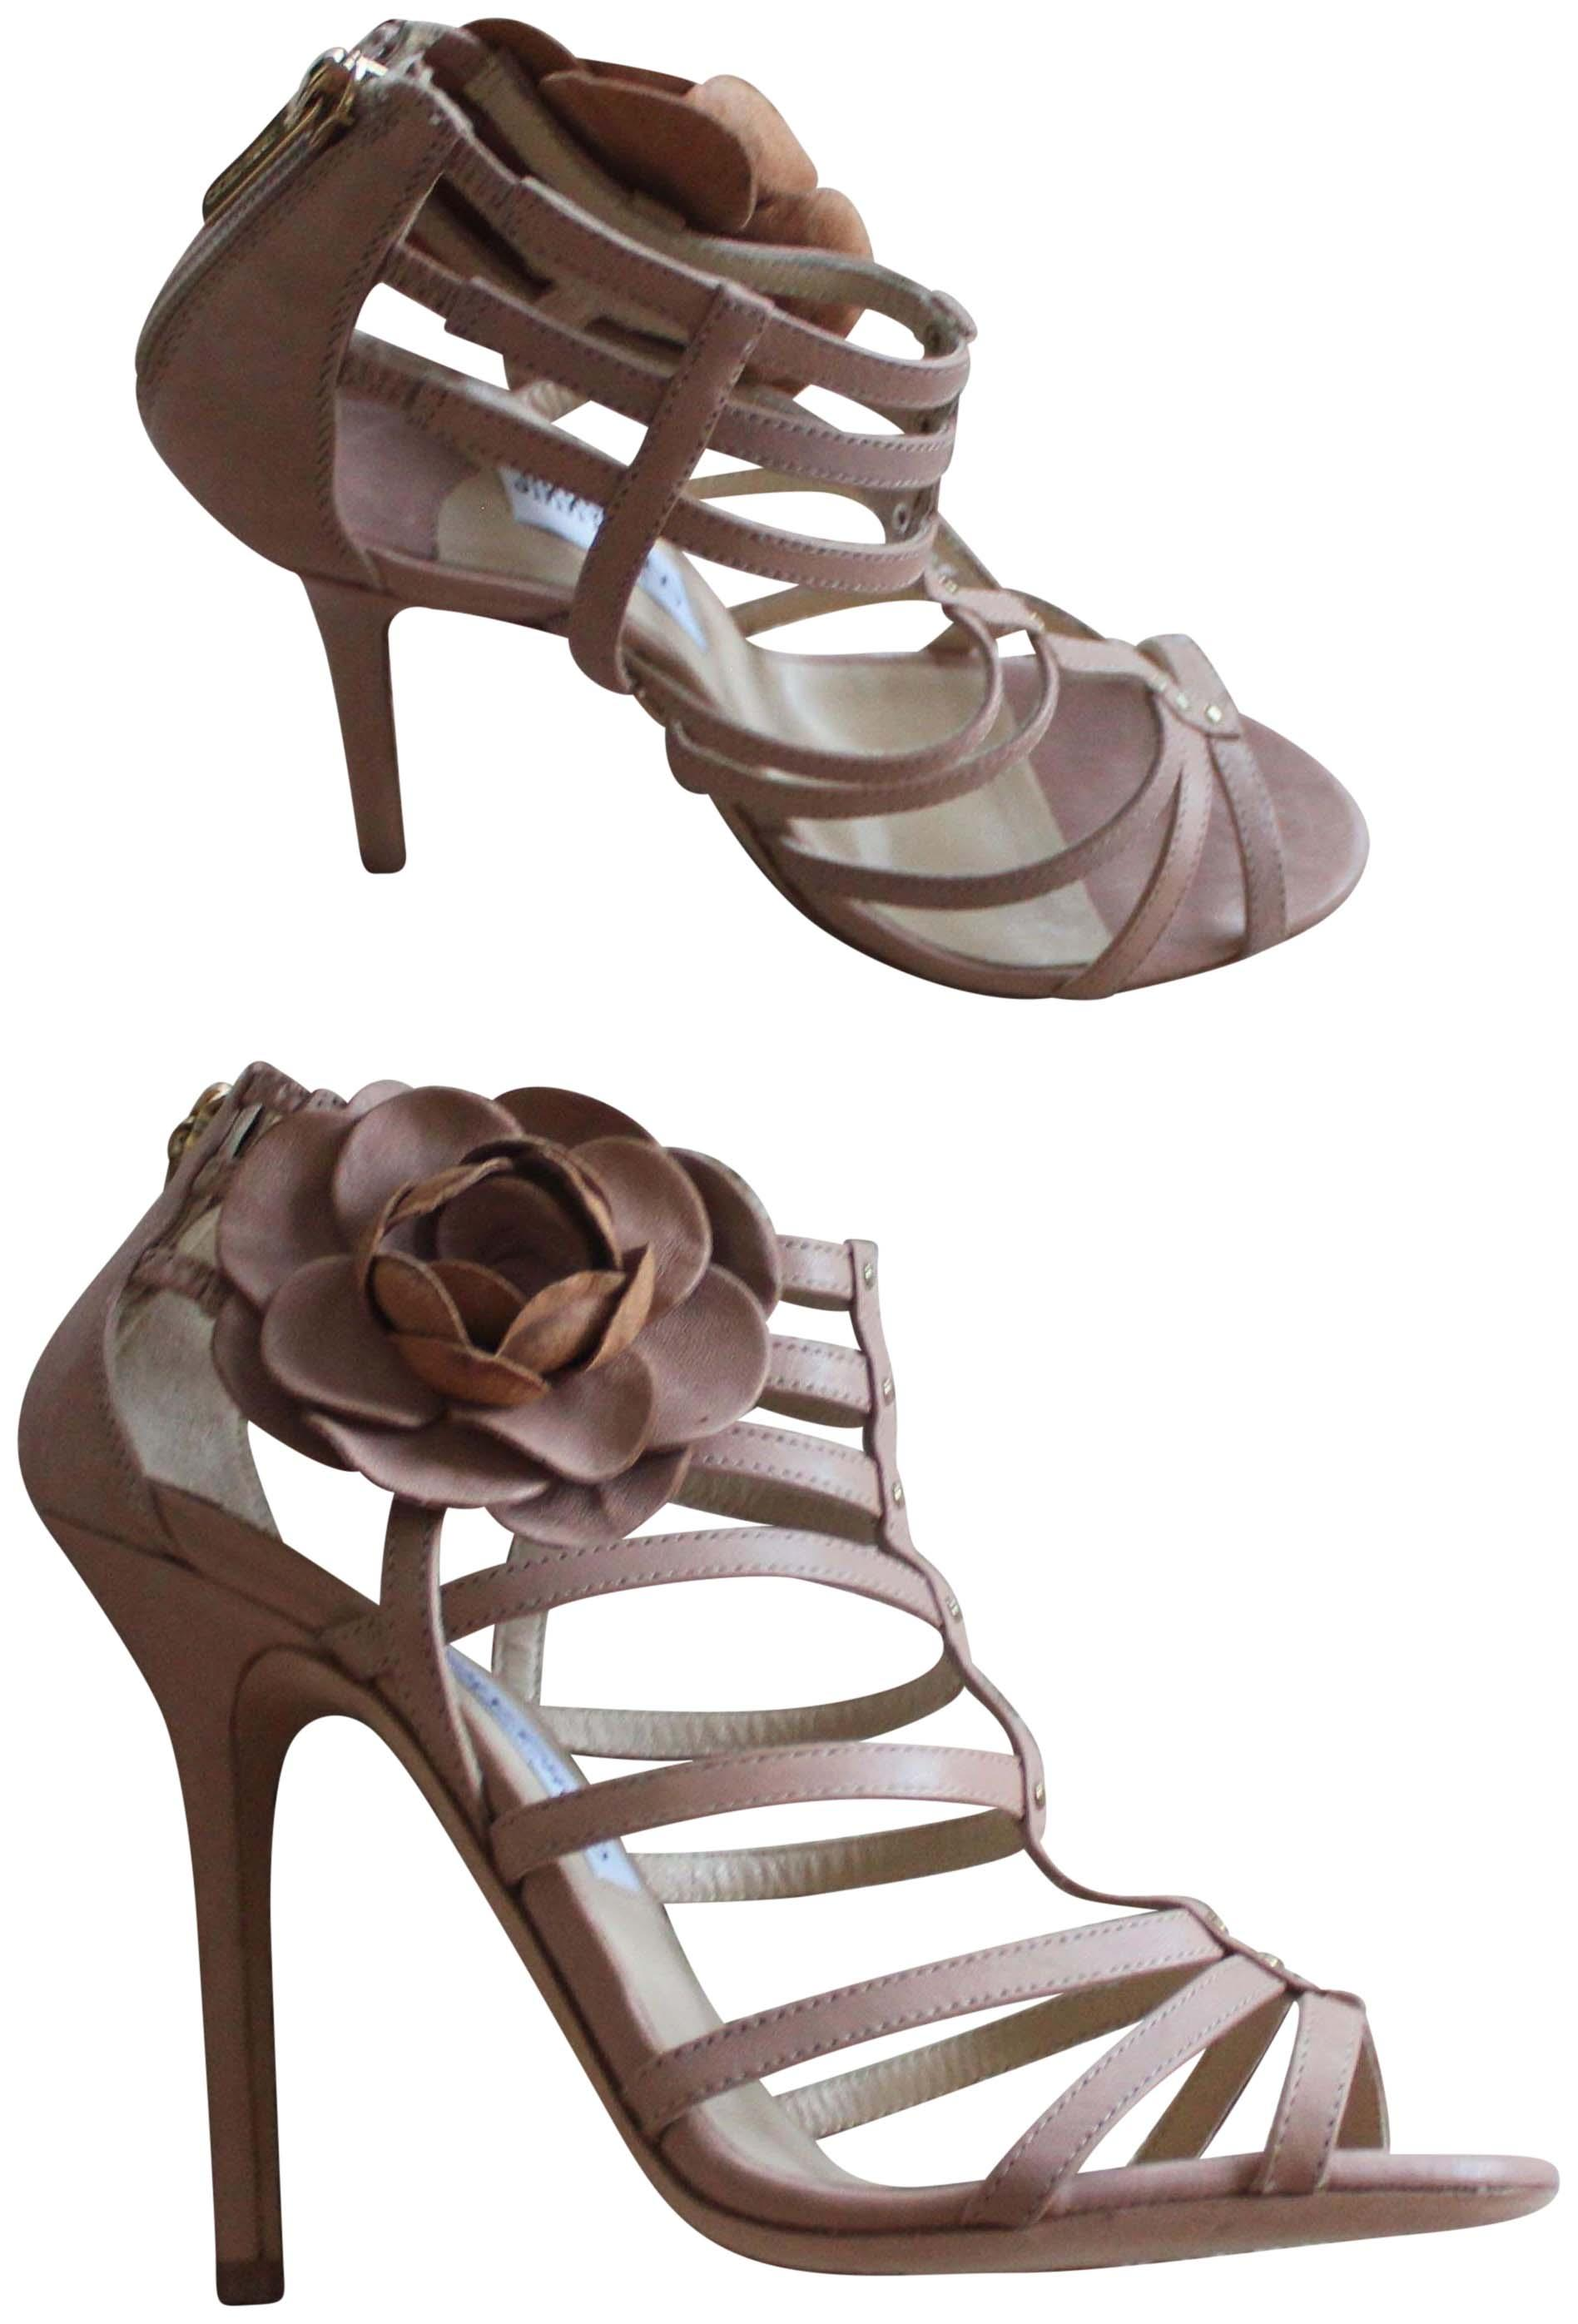 Jimmy choo Leather Gladiator Sandals. Clearance Latest Latest Collections Online XzvV5nE